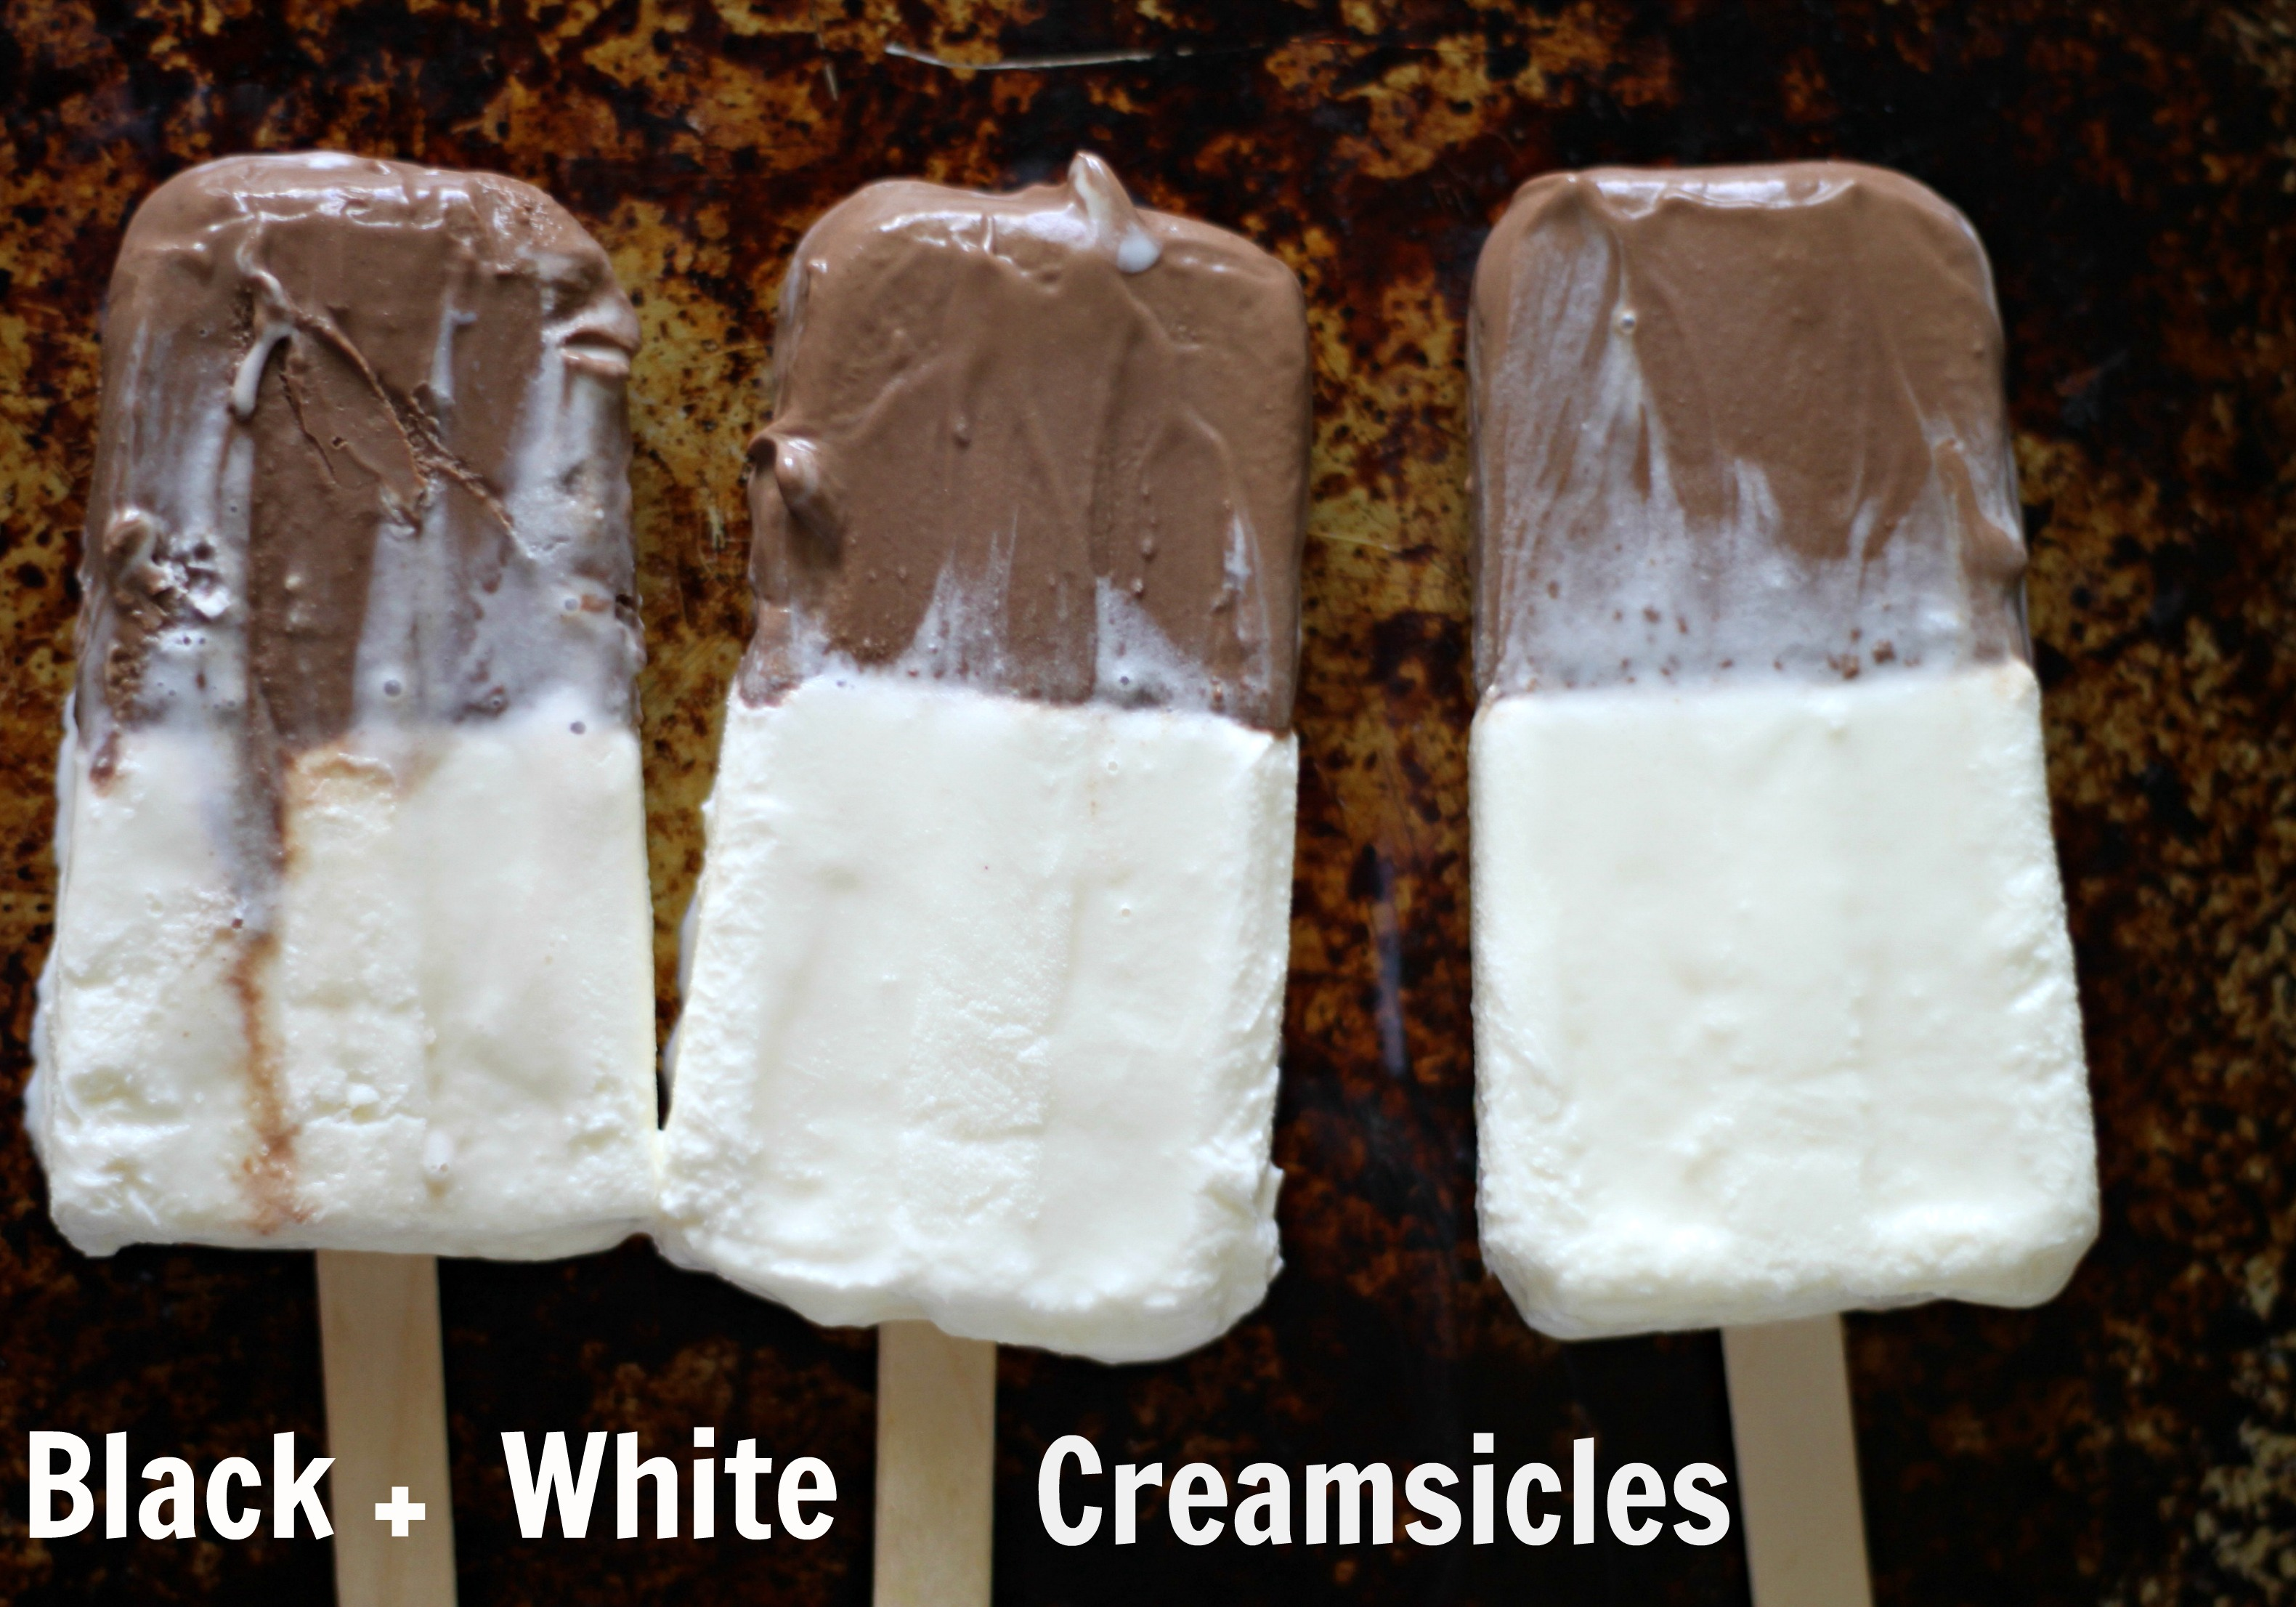 Black + White Creamsicles